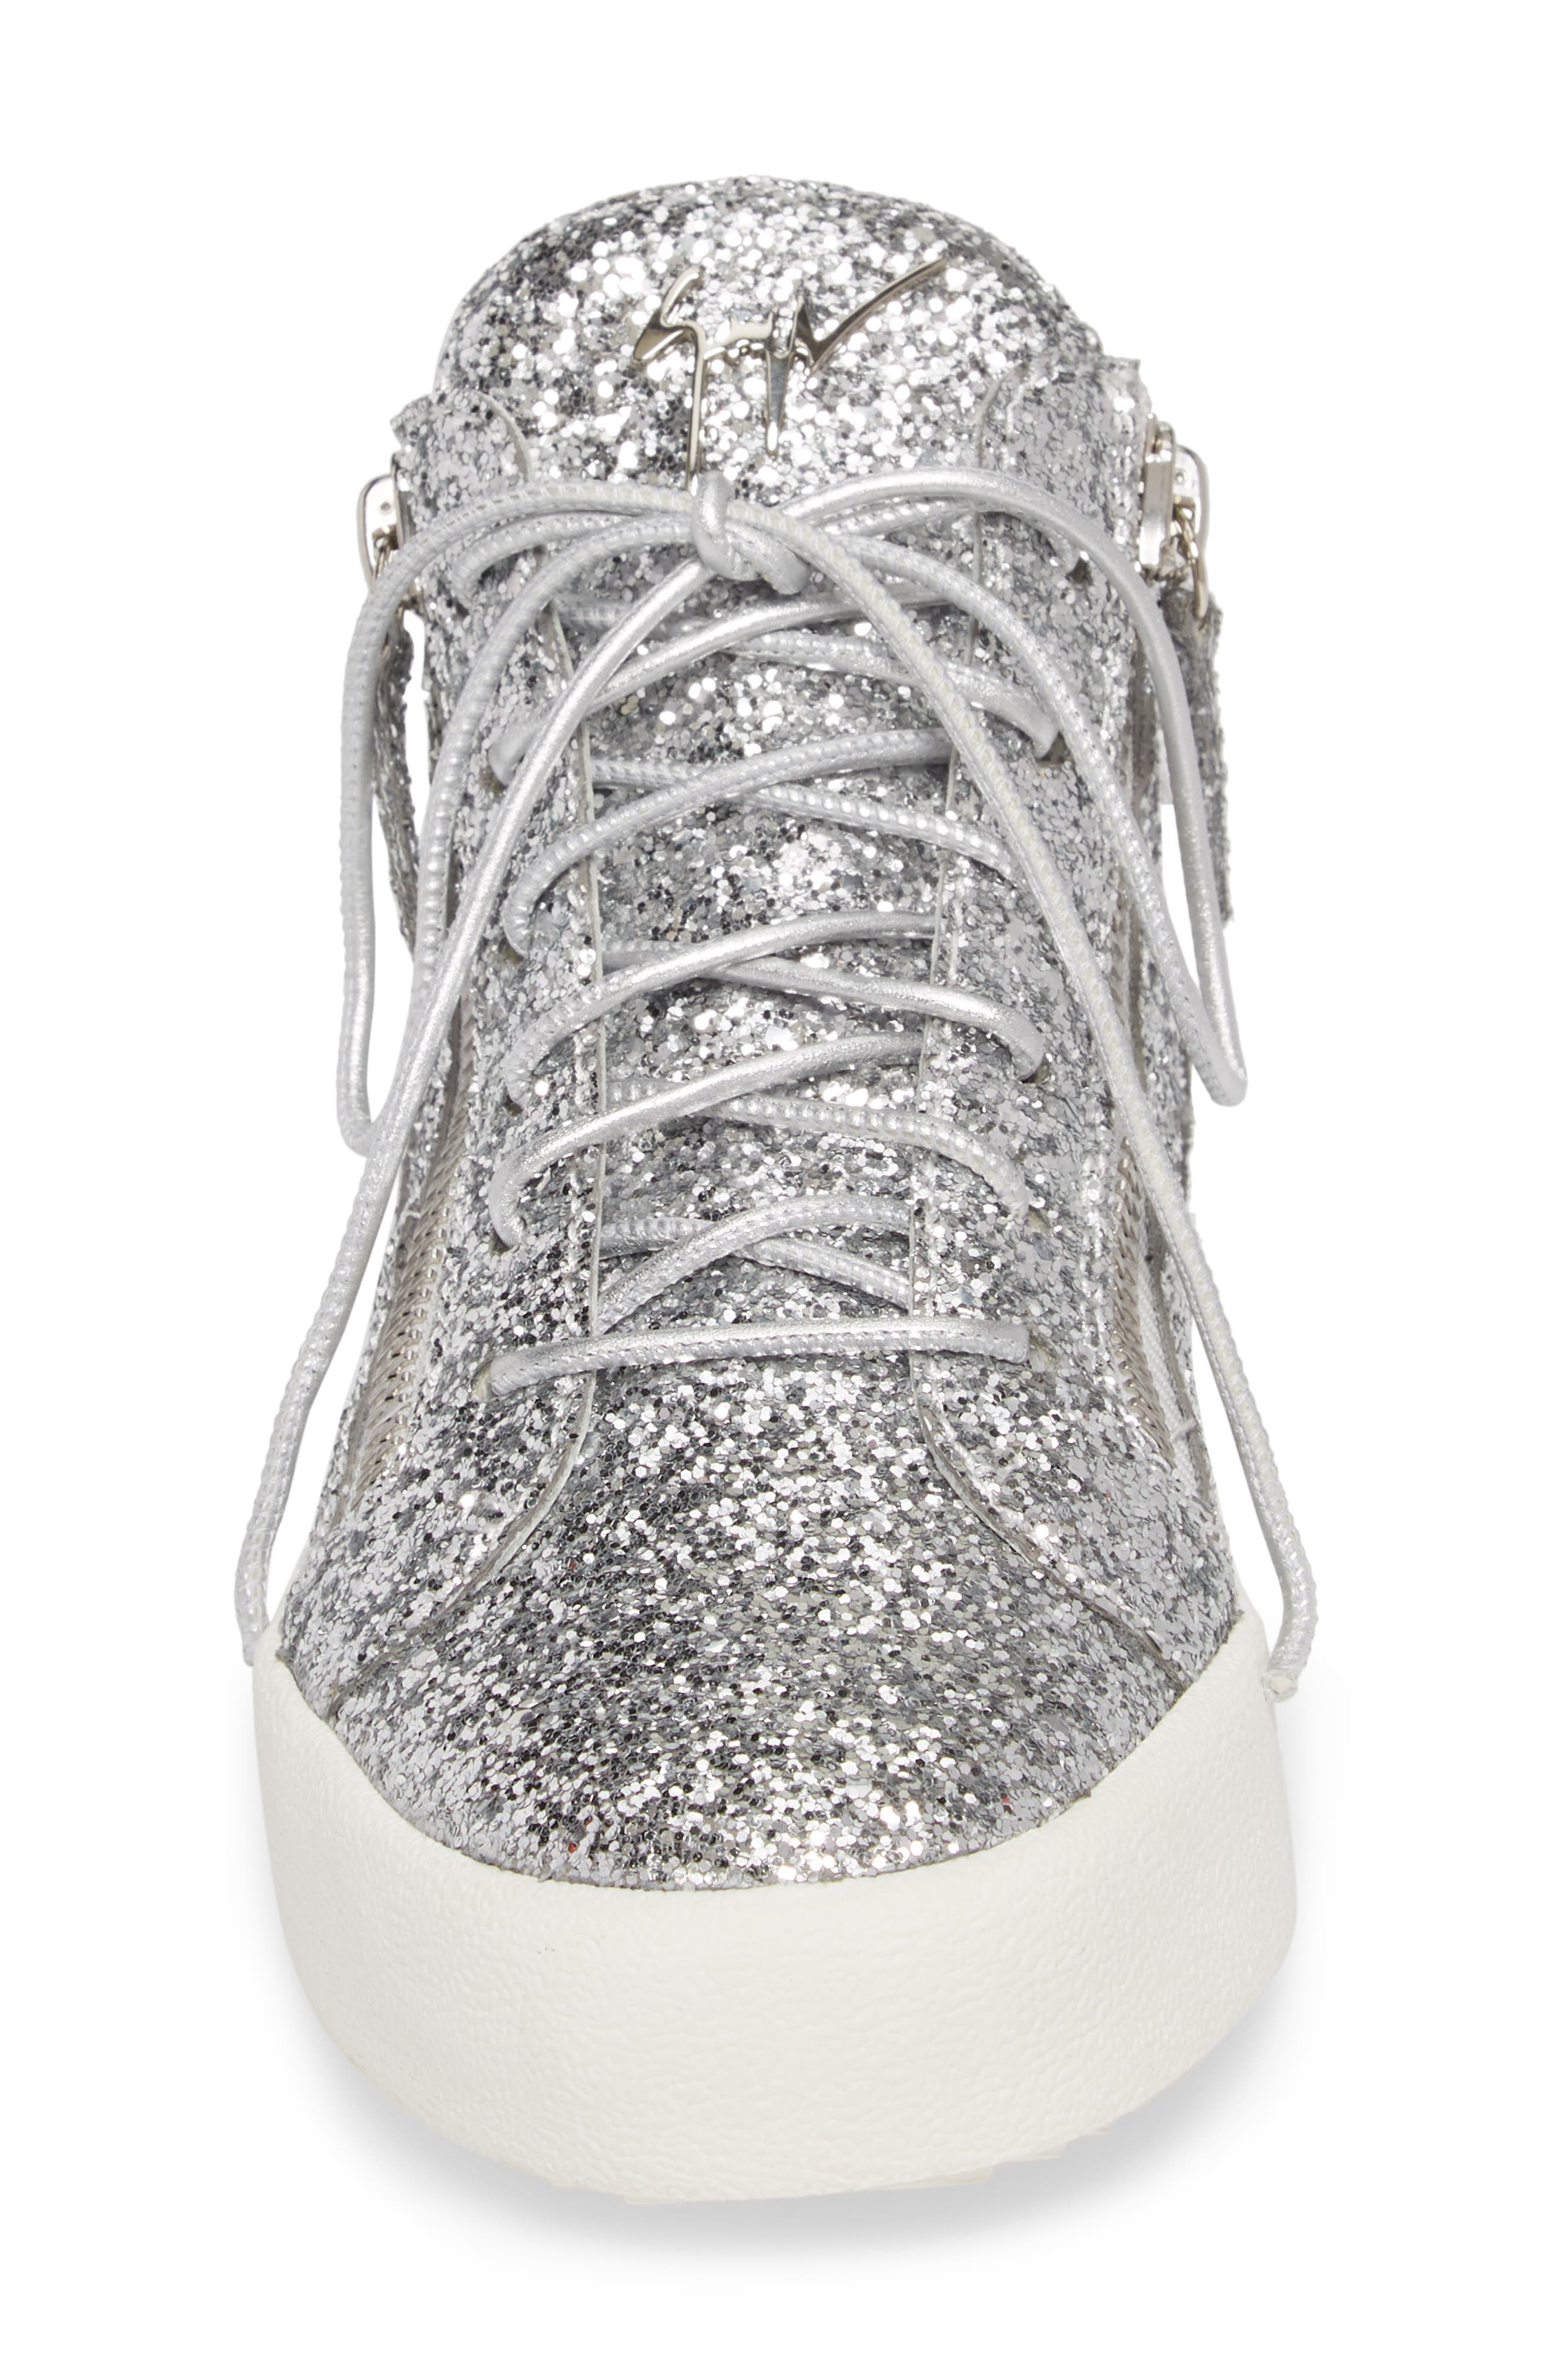 May London High Top Sneaker,                             Alternate thumbnail 4, color,                             SILVER